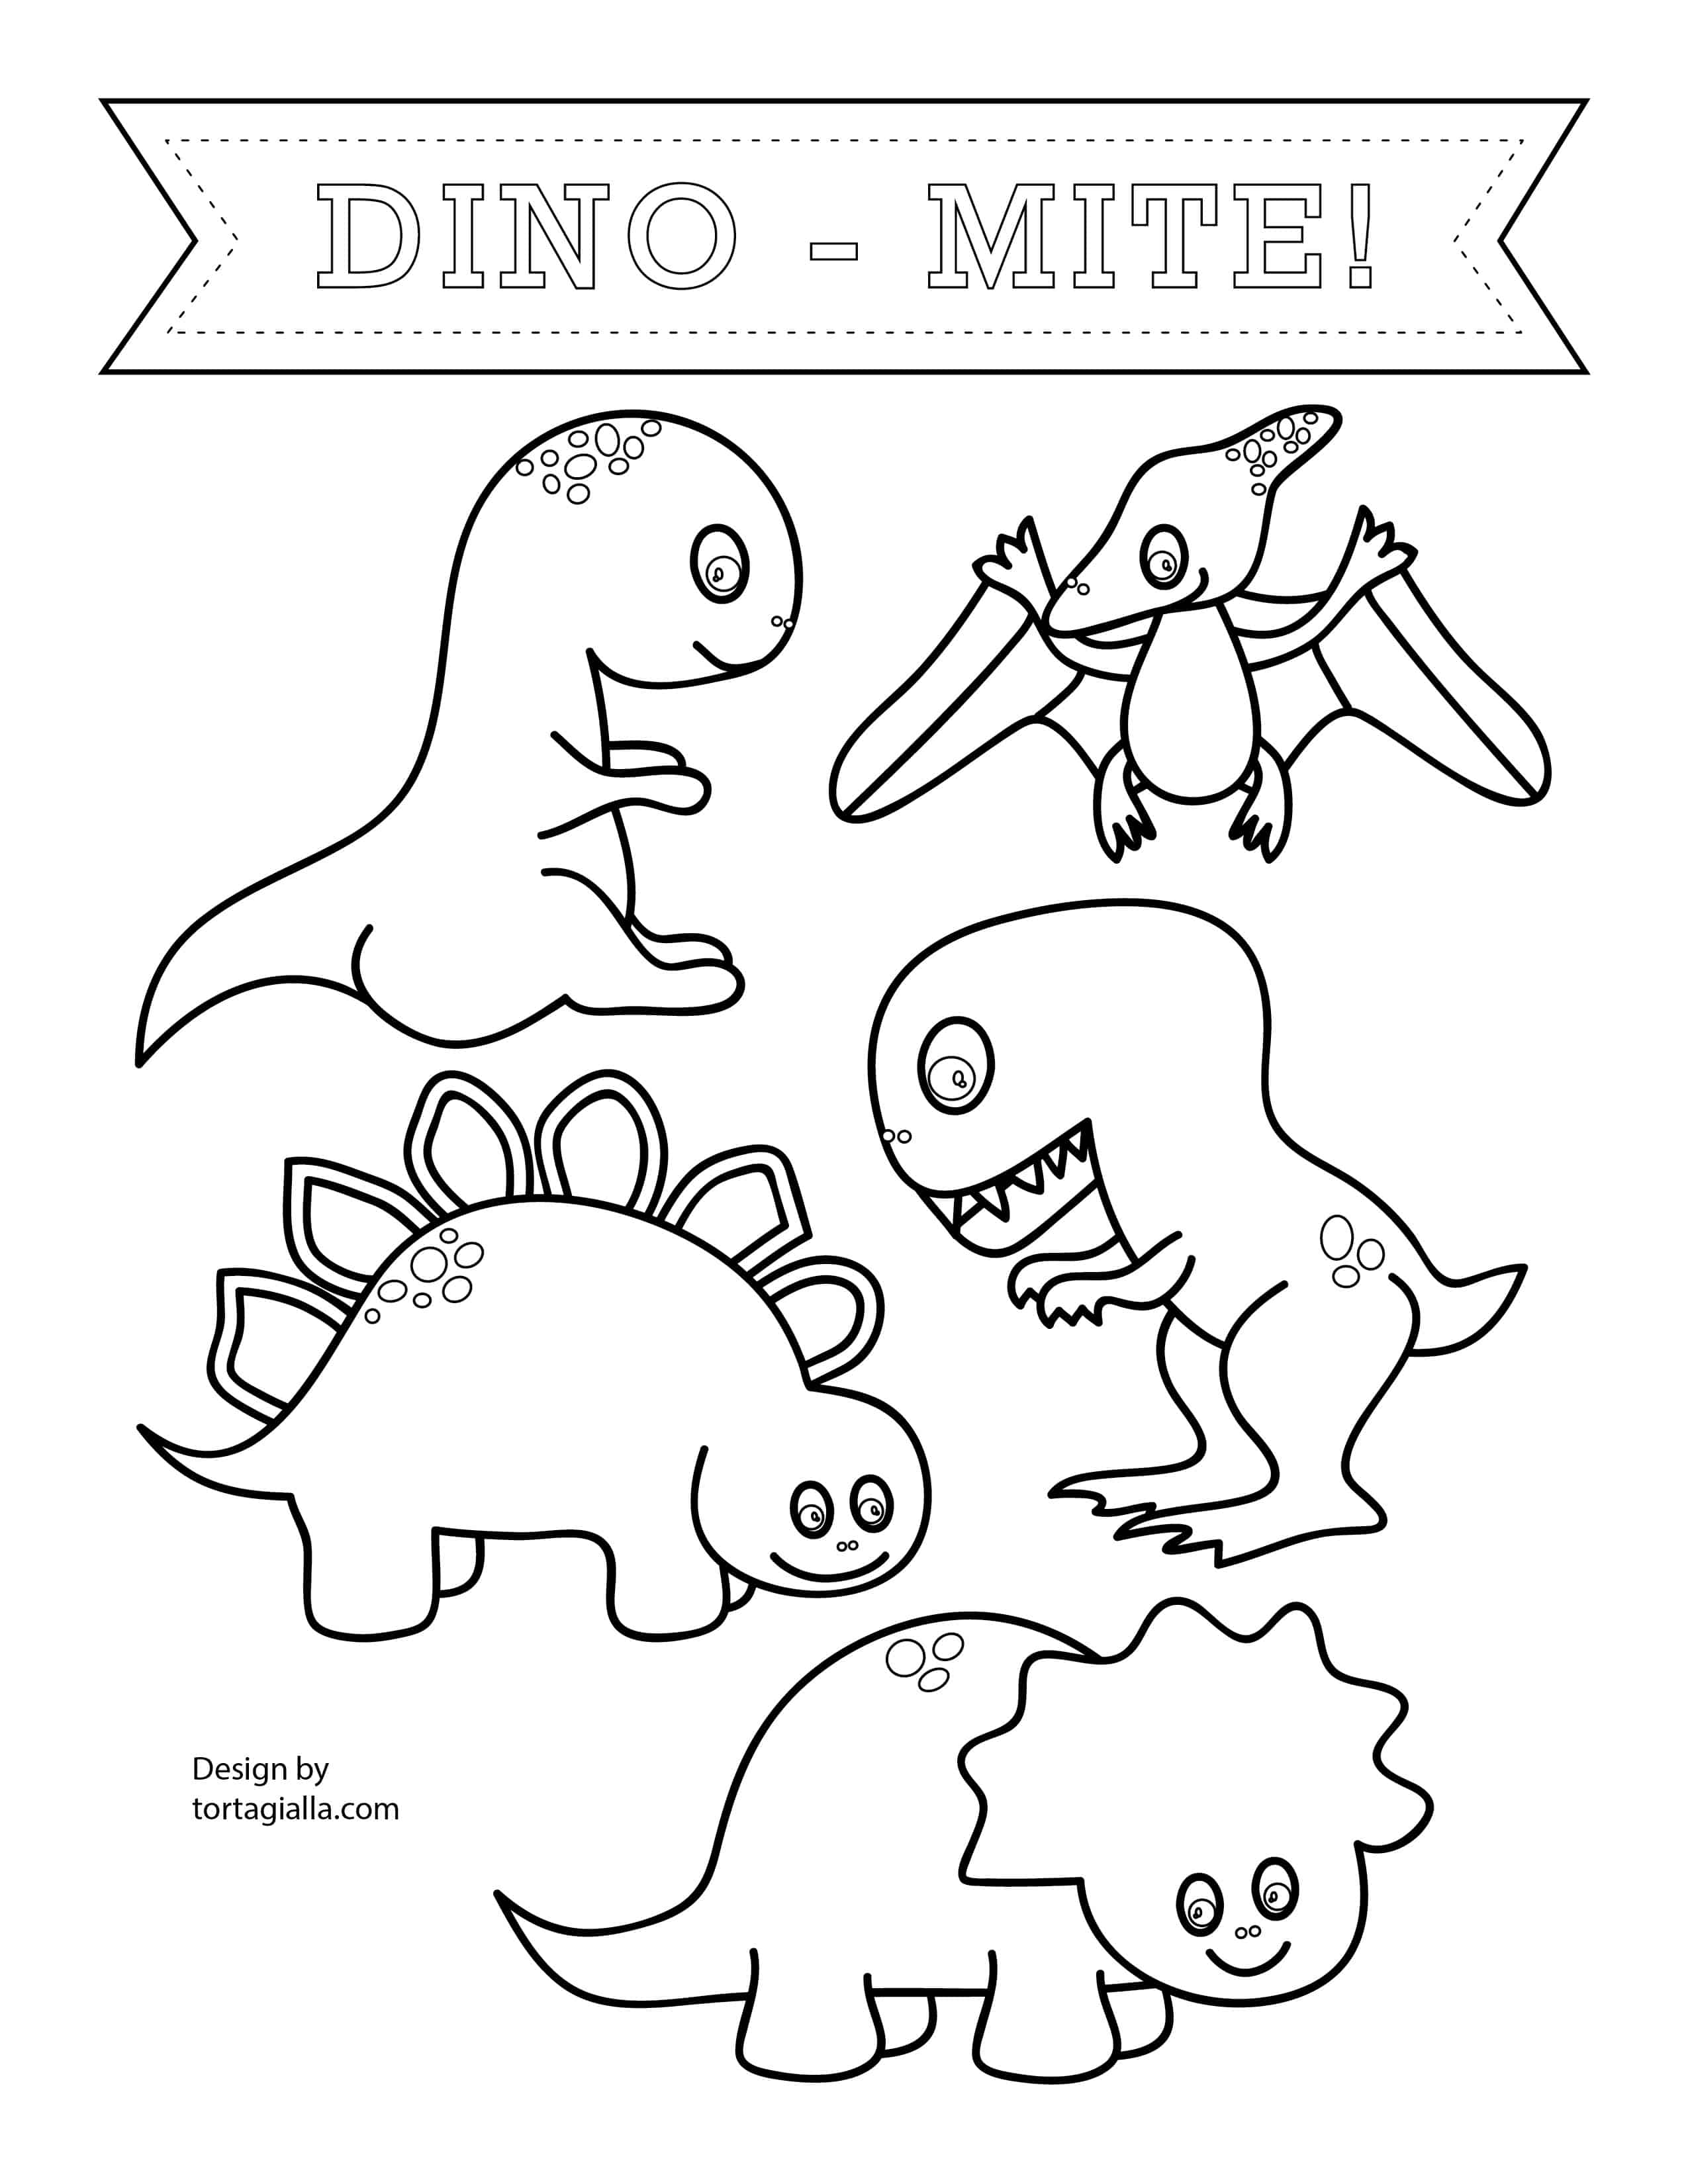 coloring dinosaur free printables coloring pages dinosaur free printable coloring pages printables free dinosaur coloring